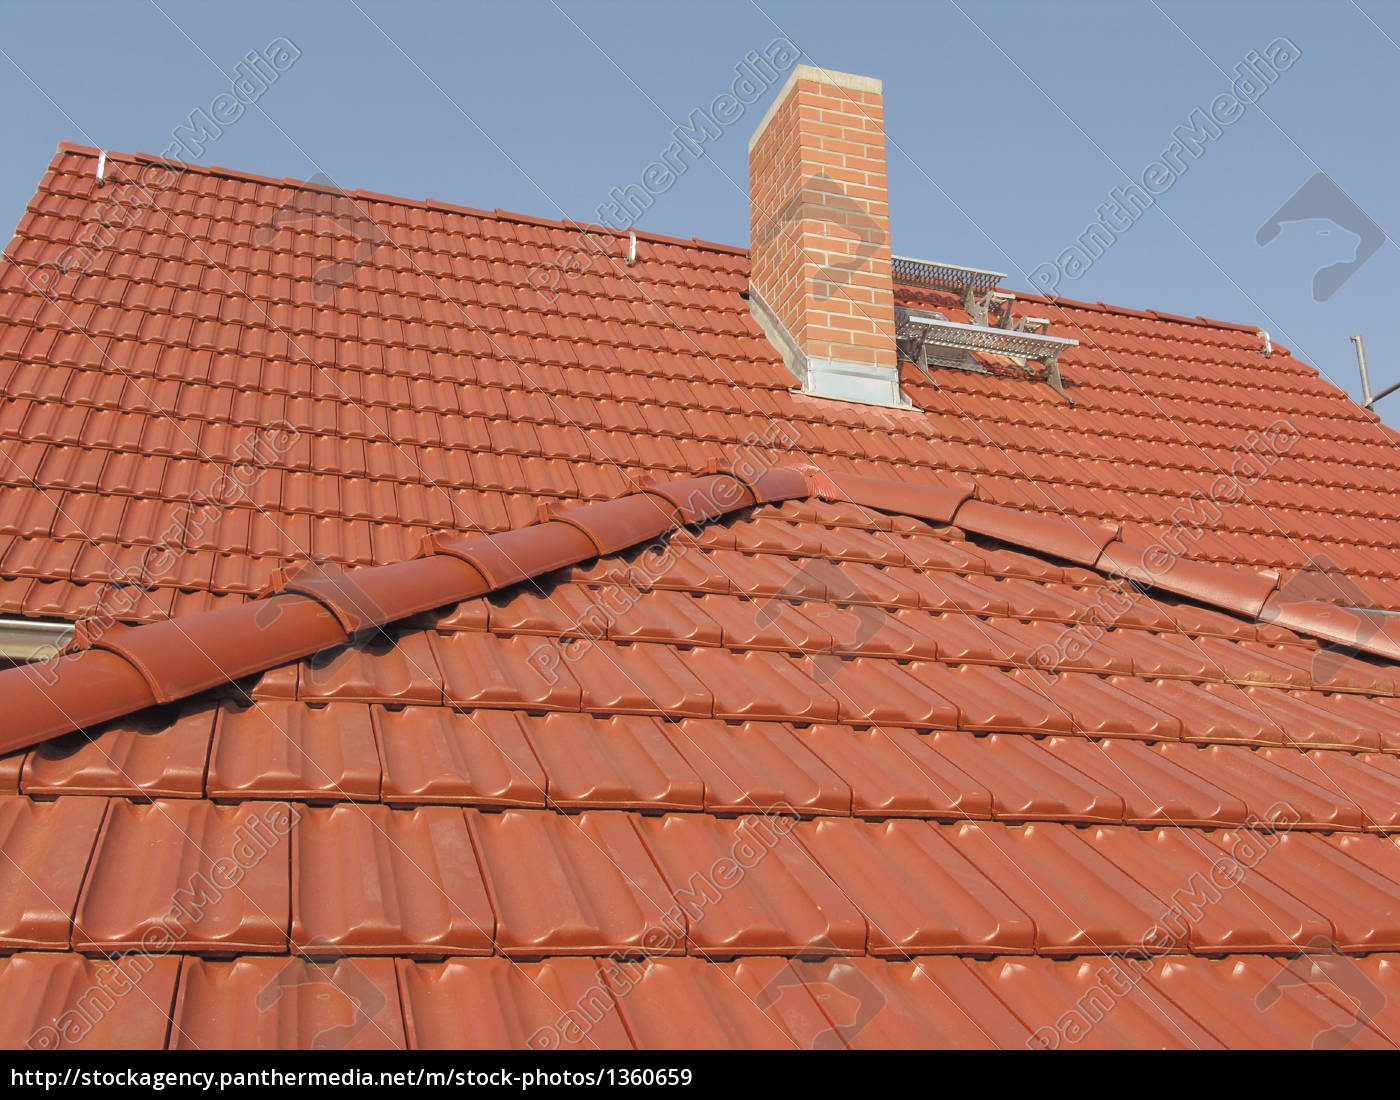 roof, covering, architecture, chimney - 1360659